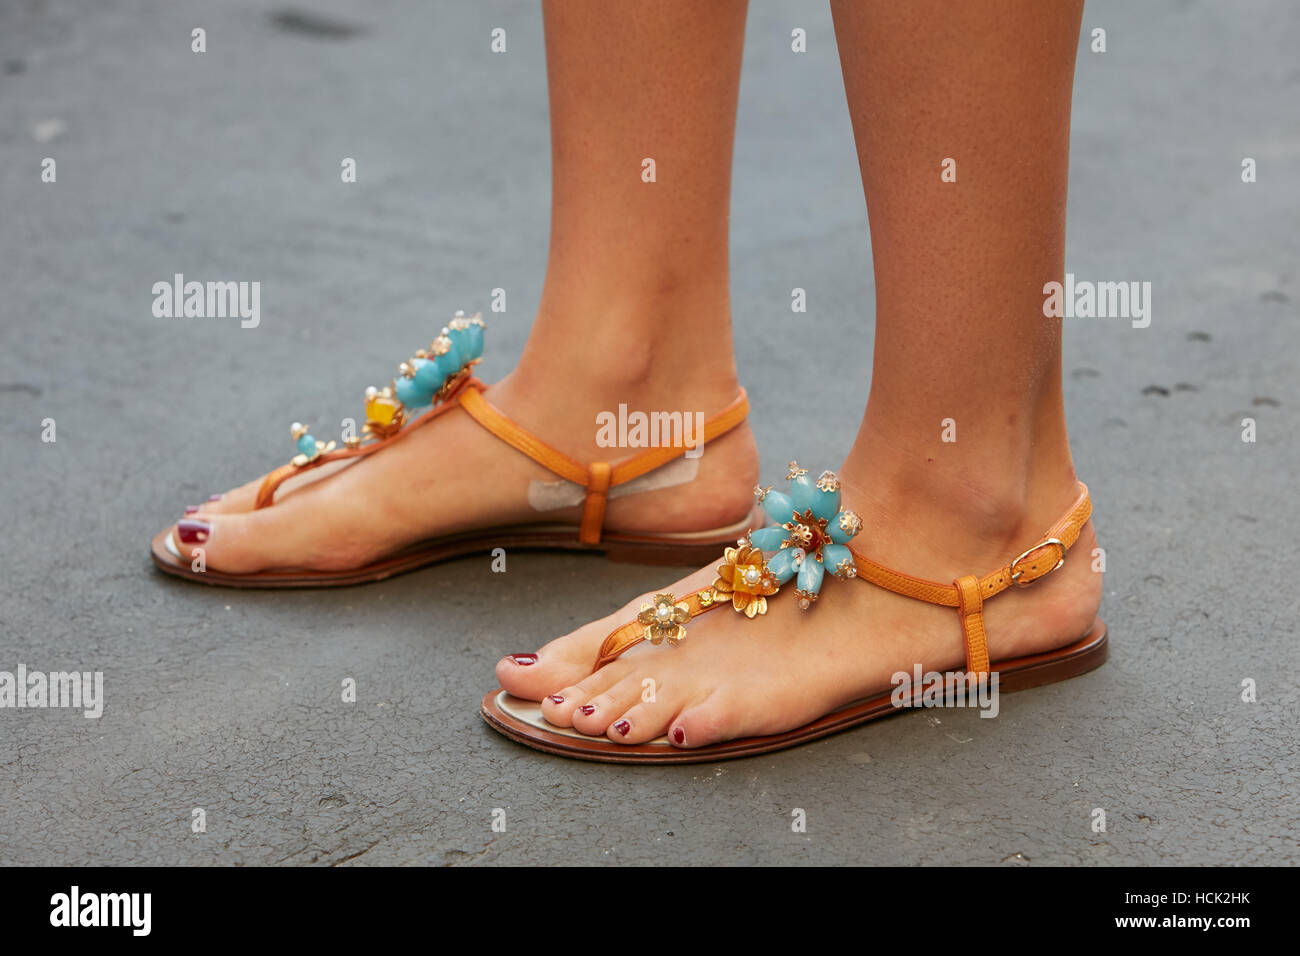 Woman with sandals with flower jewels decoration before Salvatore Ferragamo fashion show, Milan Fashion Week street - Stock Image